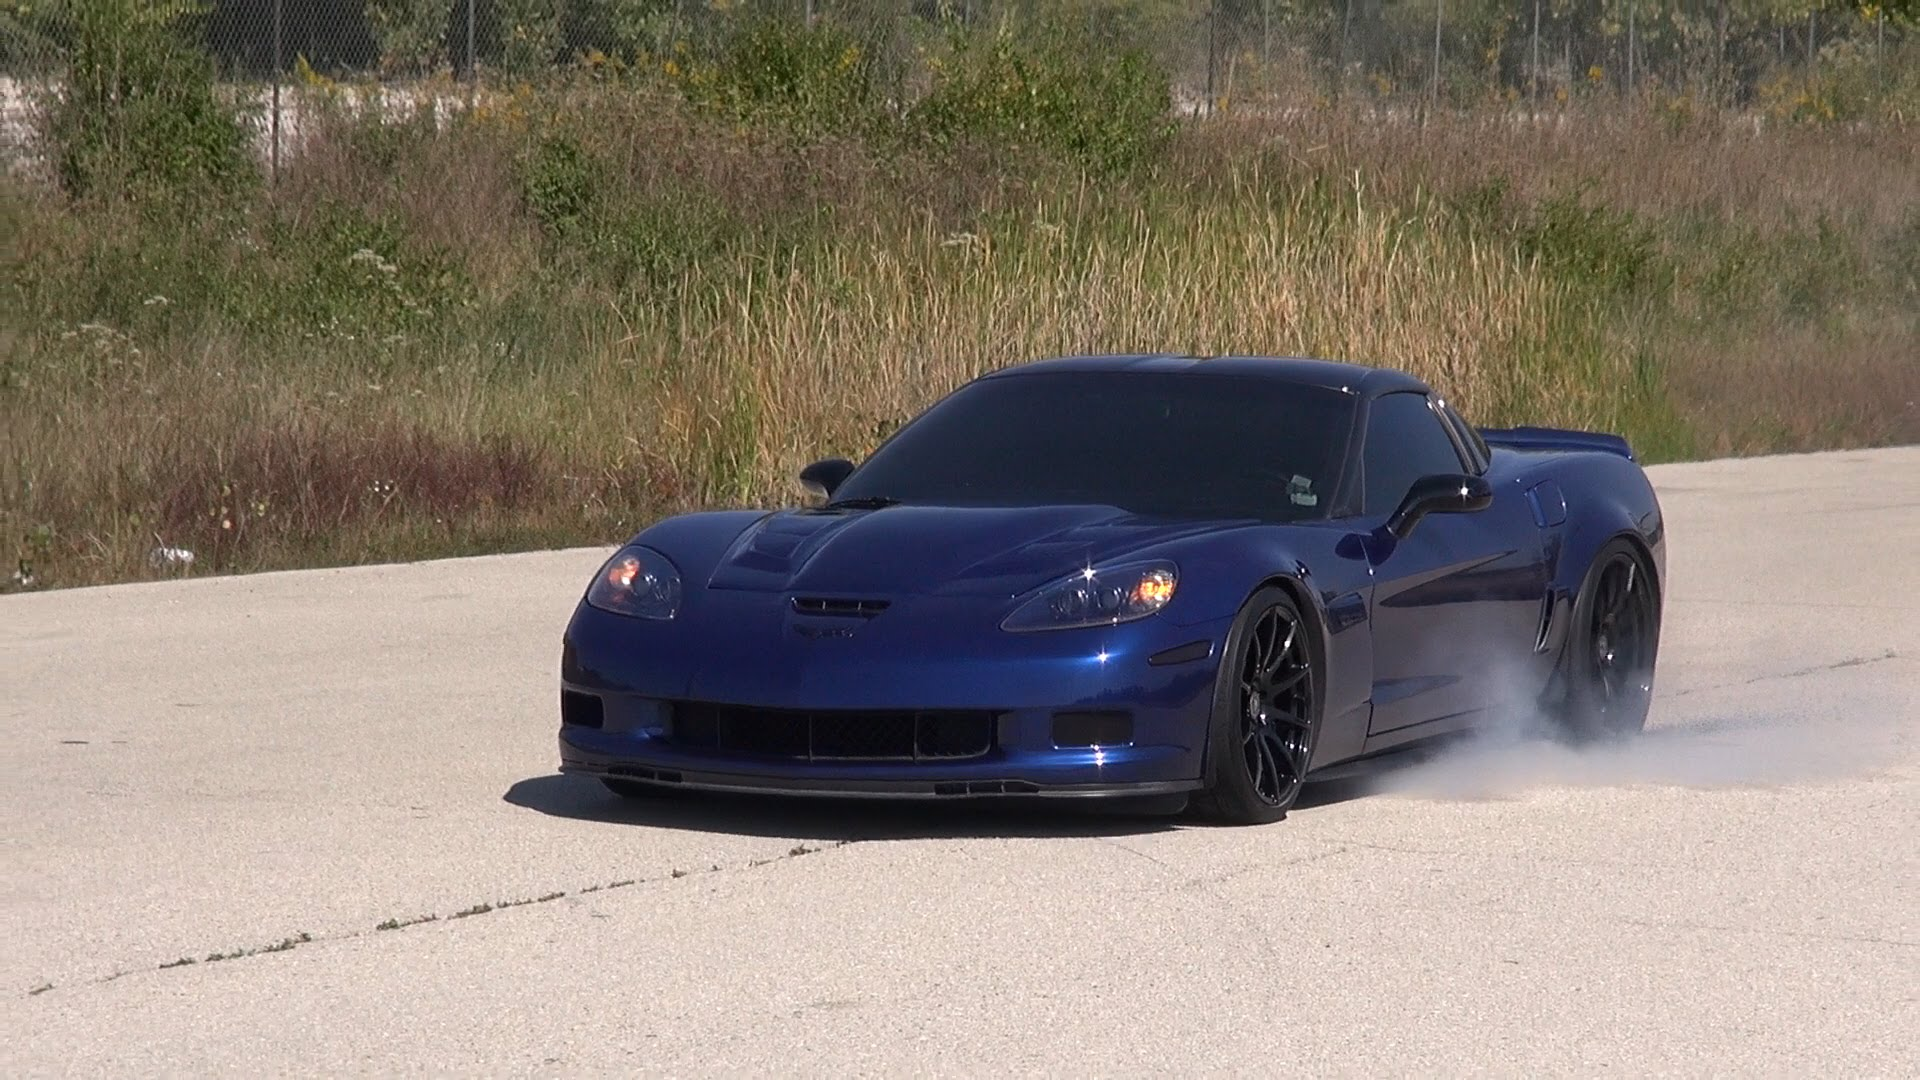 C6 Corvette Z06 on Steroids - VetteTube - Corvette Videos